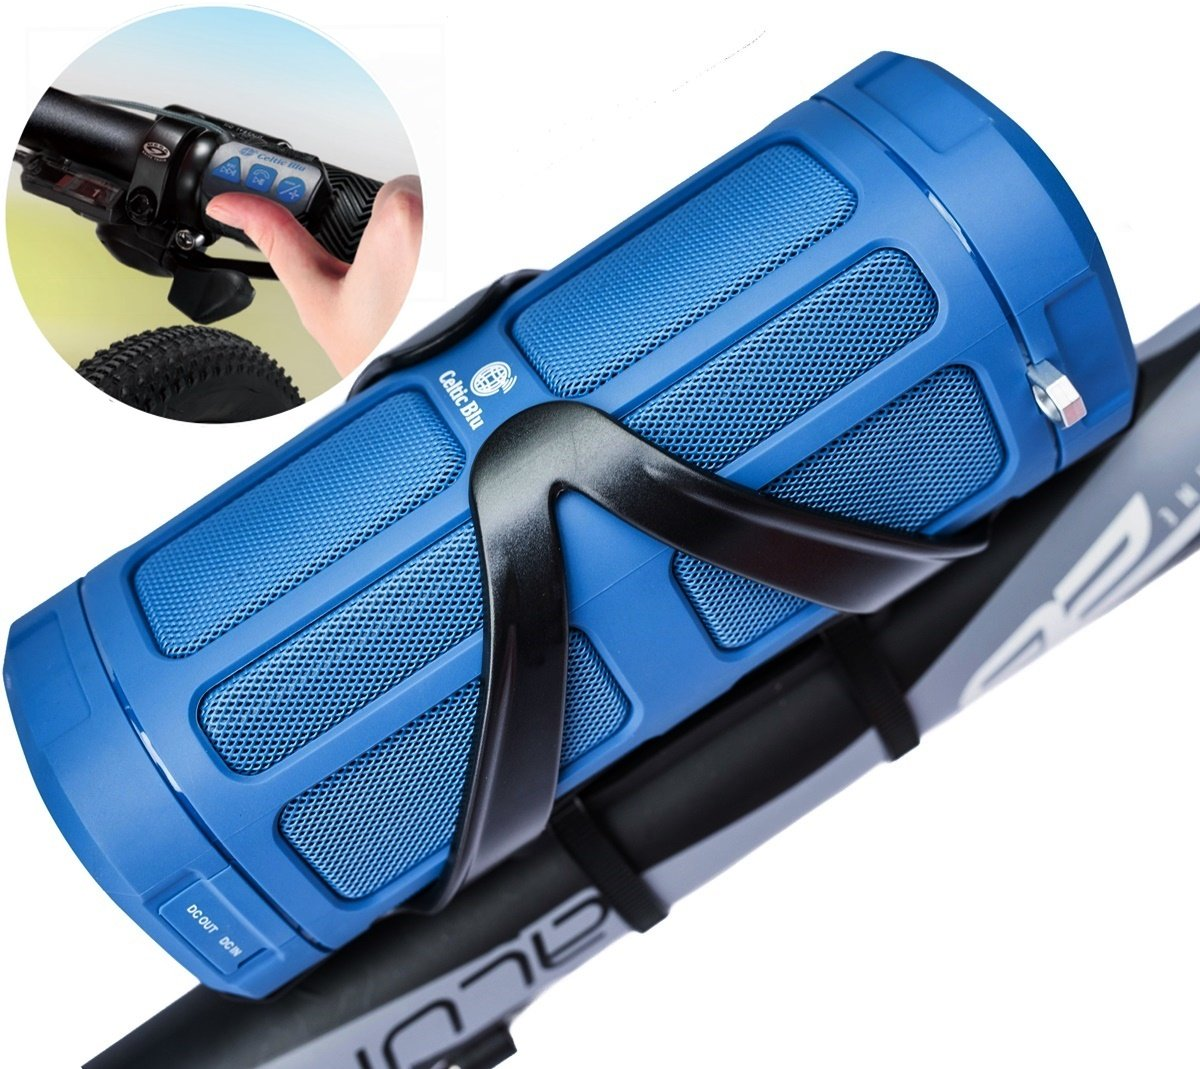 Golf Cart Stereo System Pyle Plmrkt2a Marine And Waterproof Vehicle Amplifiers On The Bluetooth Speaker By Celtic Blu 16w 100ft Range W Surround Sound Comes